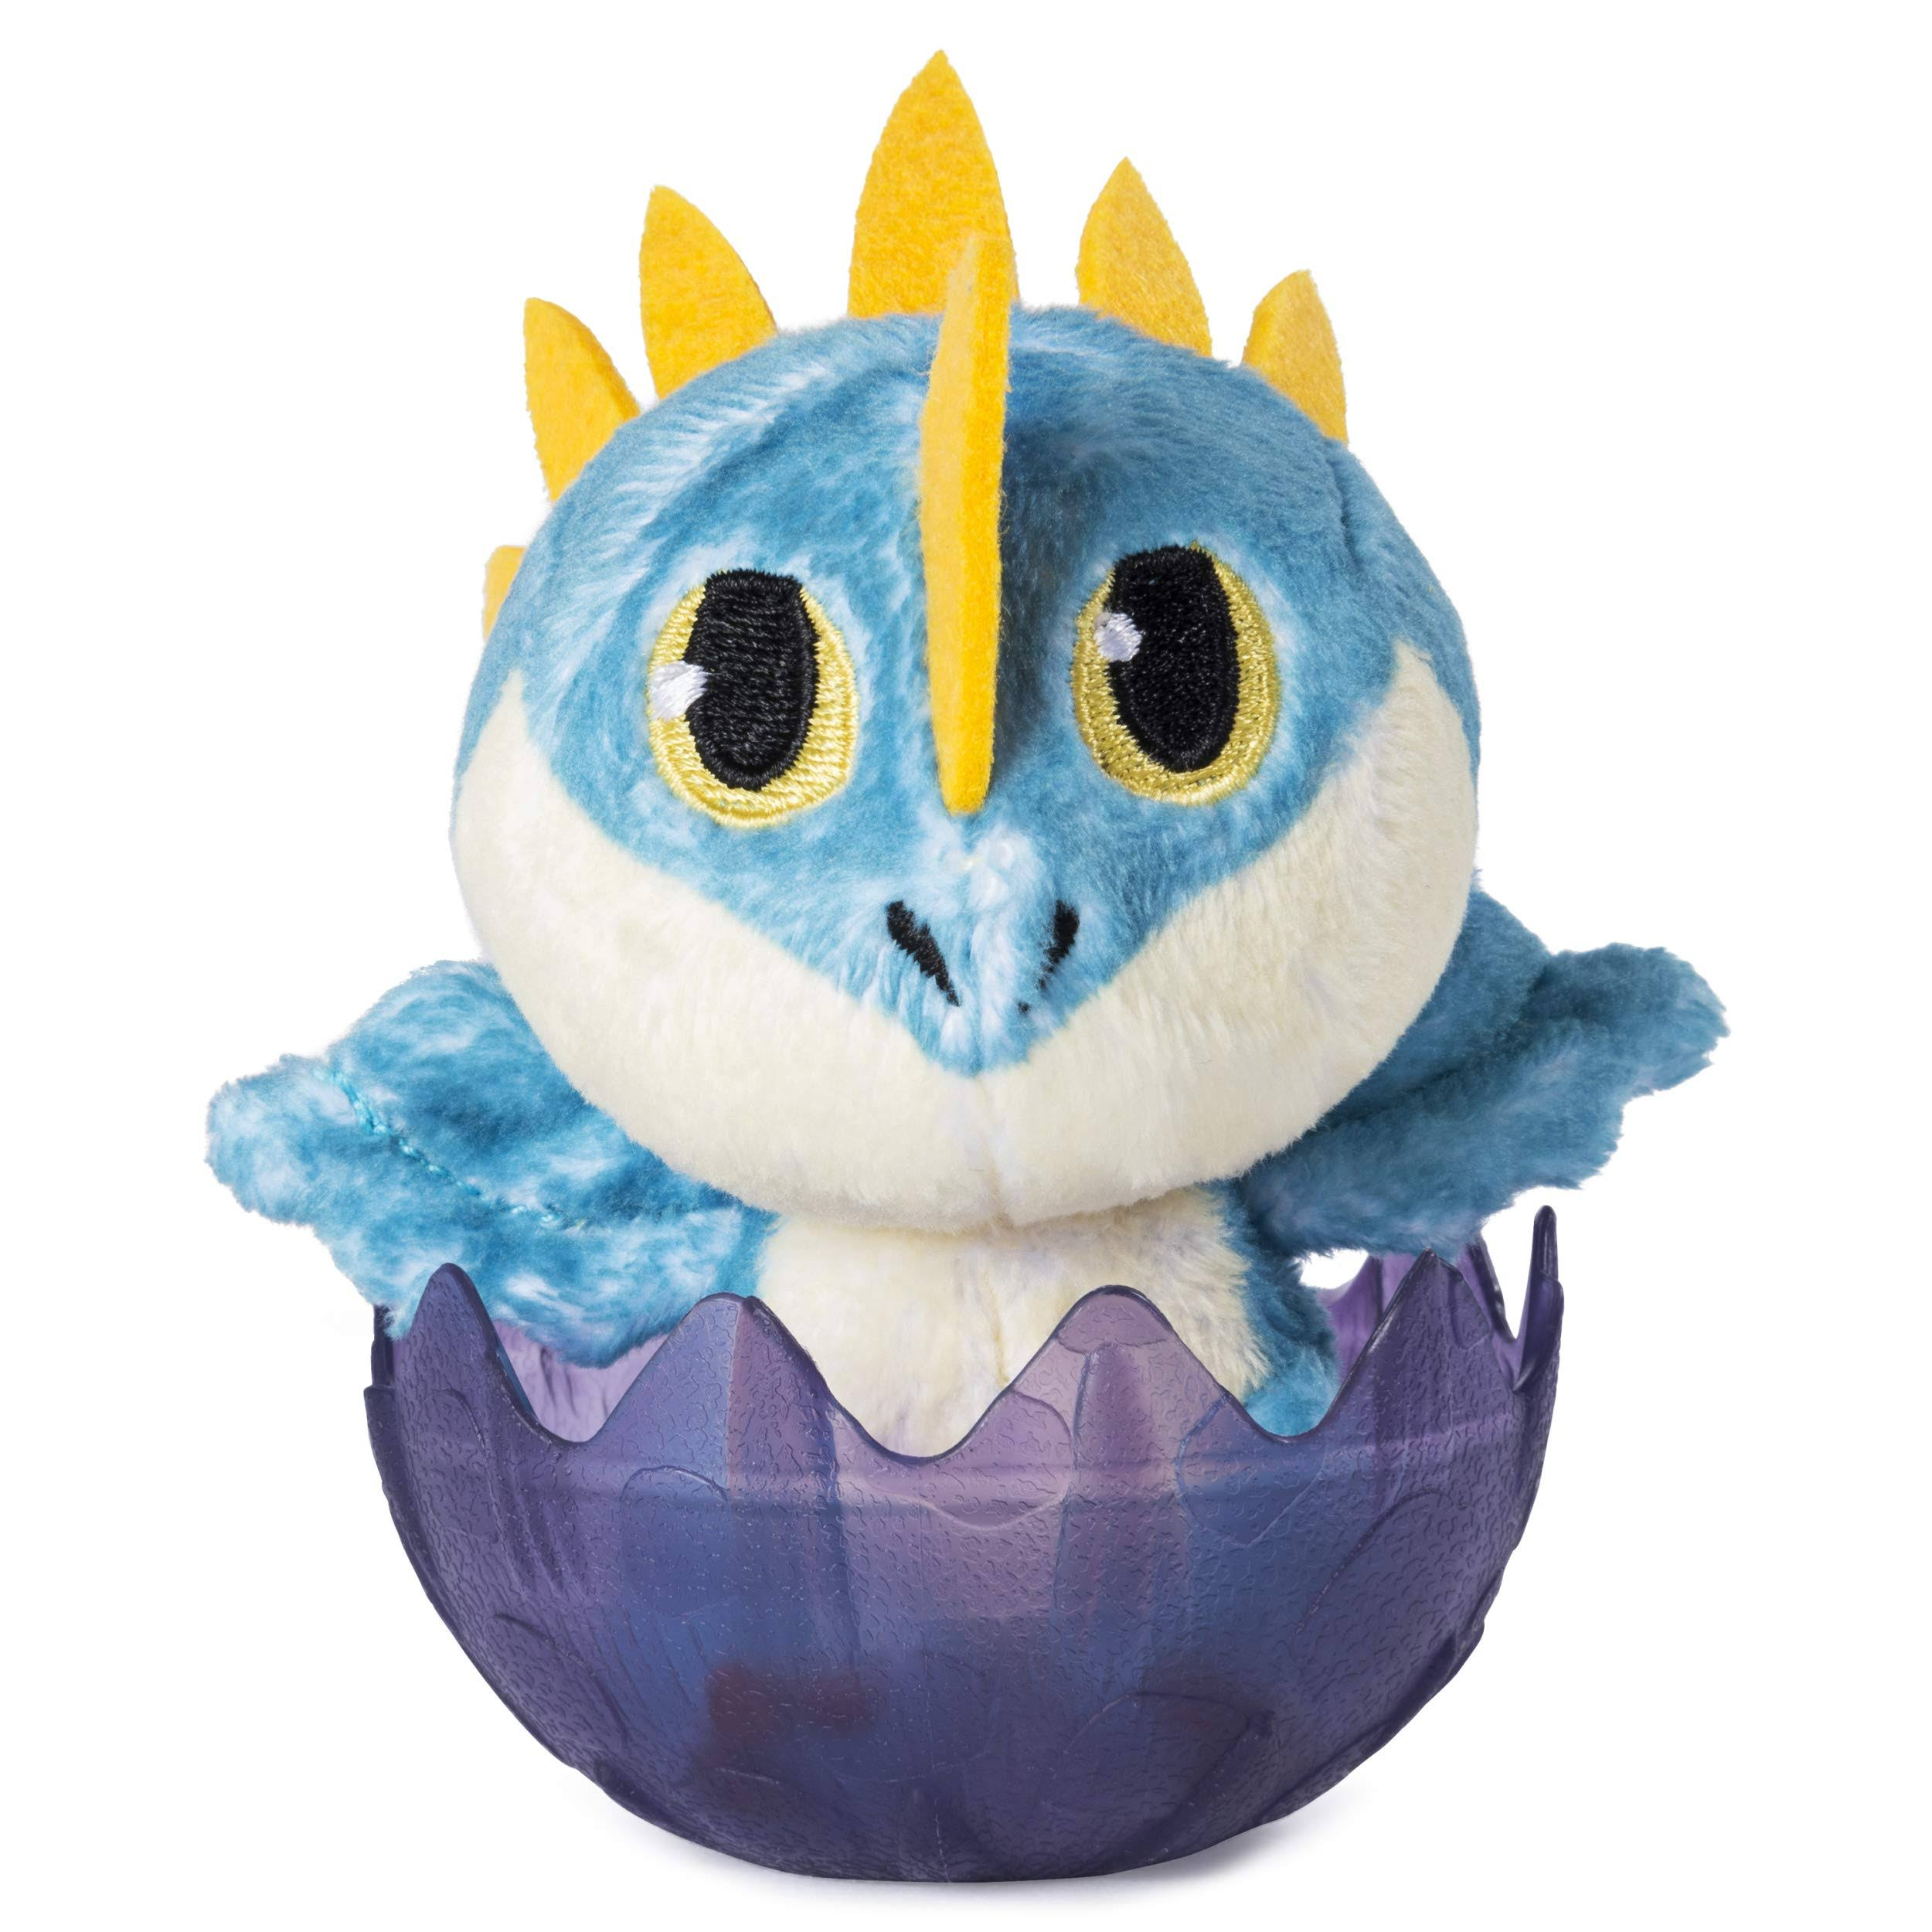 Dreamworks Dragons, Baby Stormfly 3-Inch Plush, Cute Collectible Plush Dragon in Egg, for Kids Aged 4 and Up